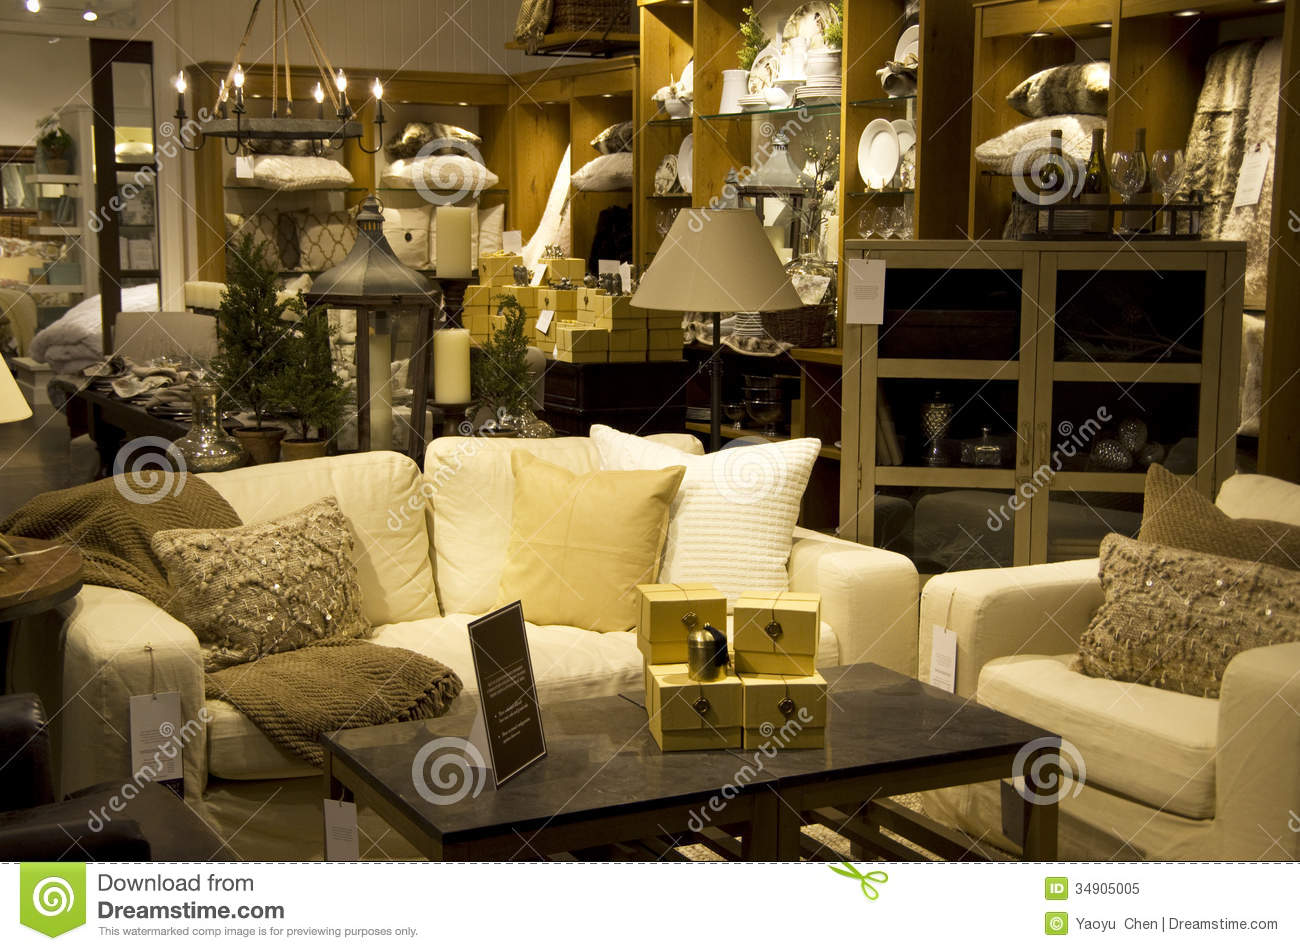 Home Decor Stores Minneapolis Home Goods Furniture Locations  Designaglowpapershop